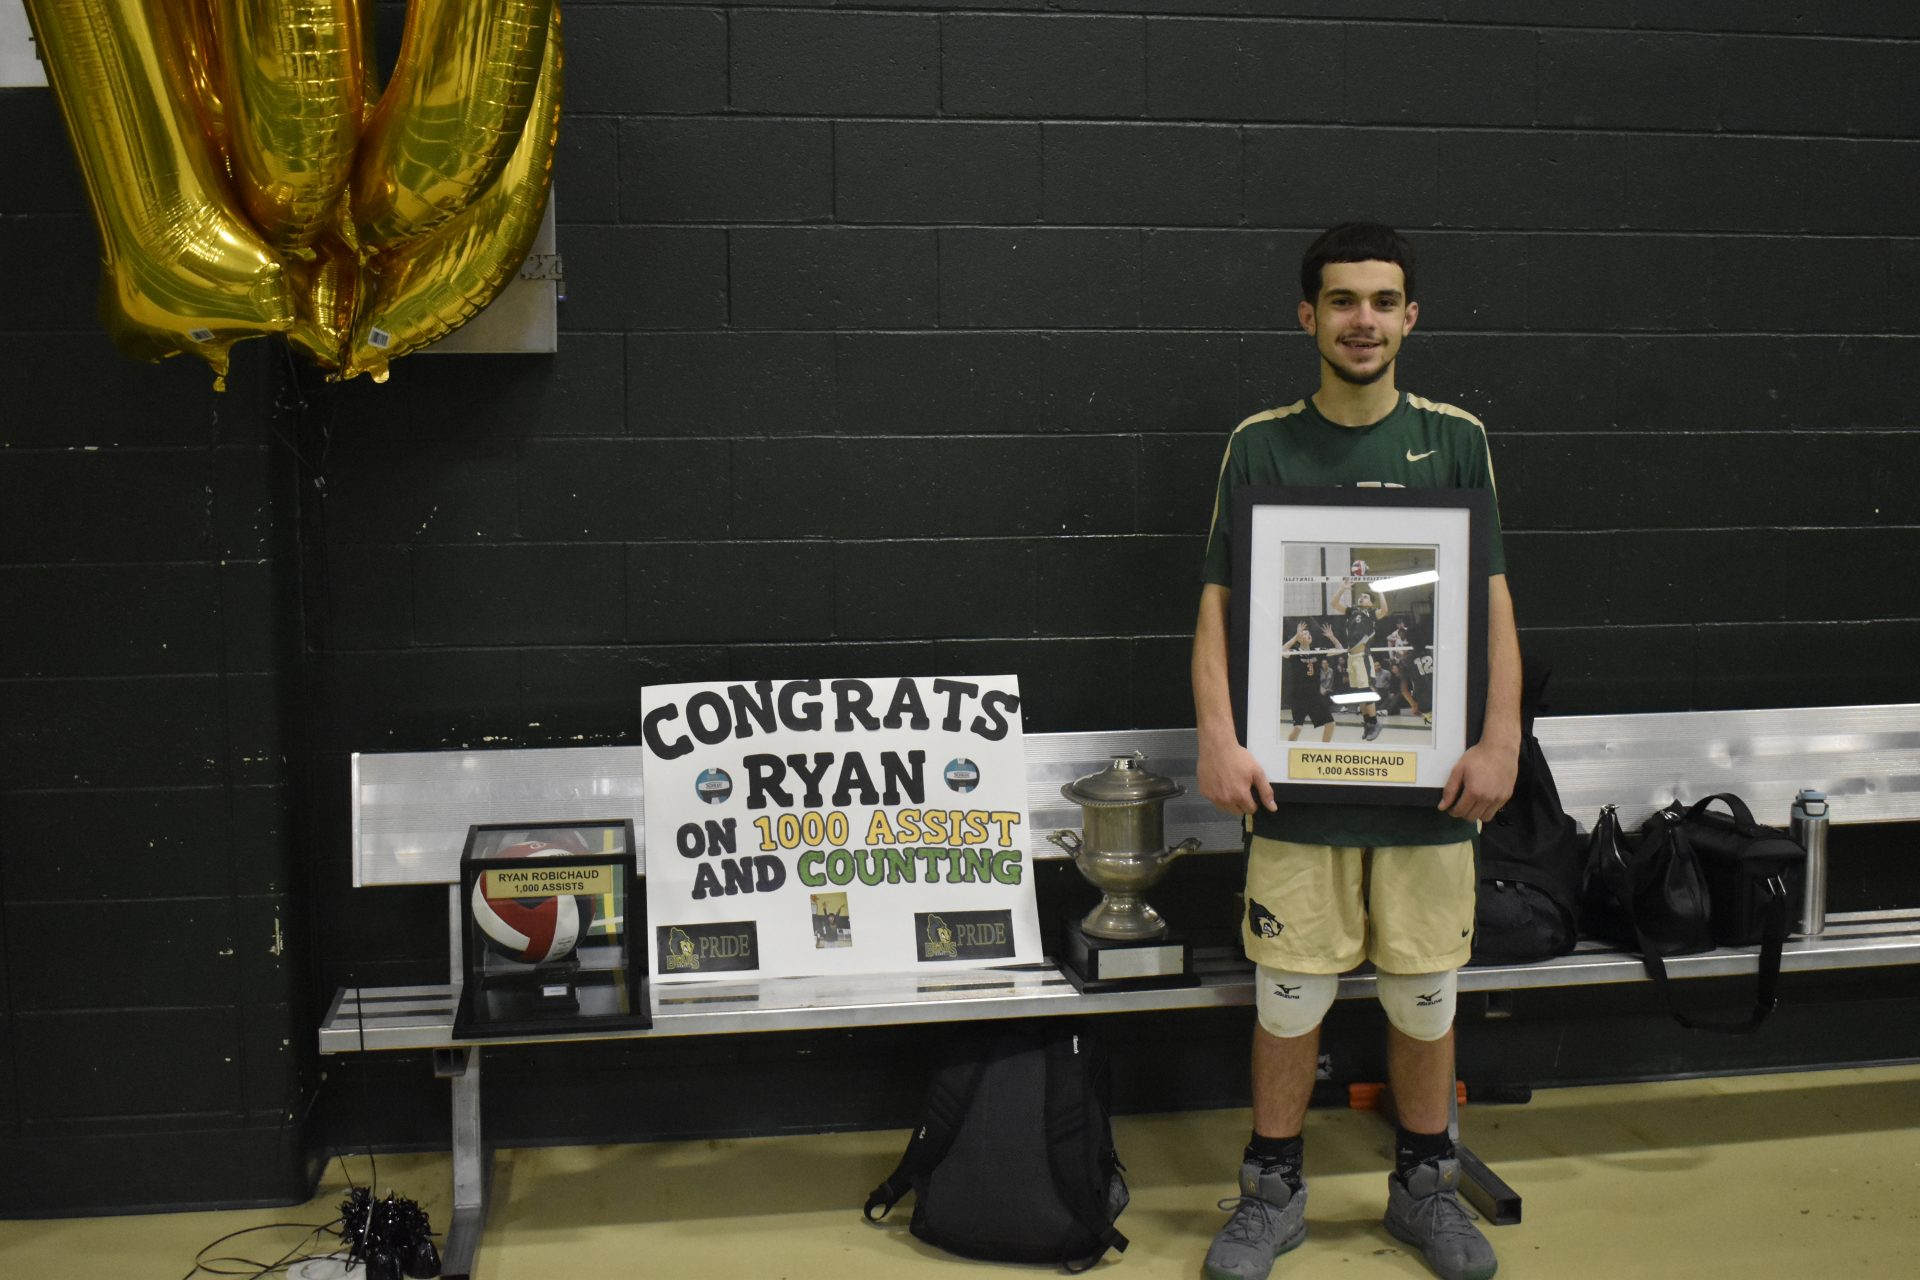 Ryan R One Thousand Assists